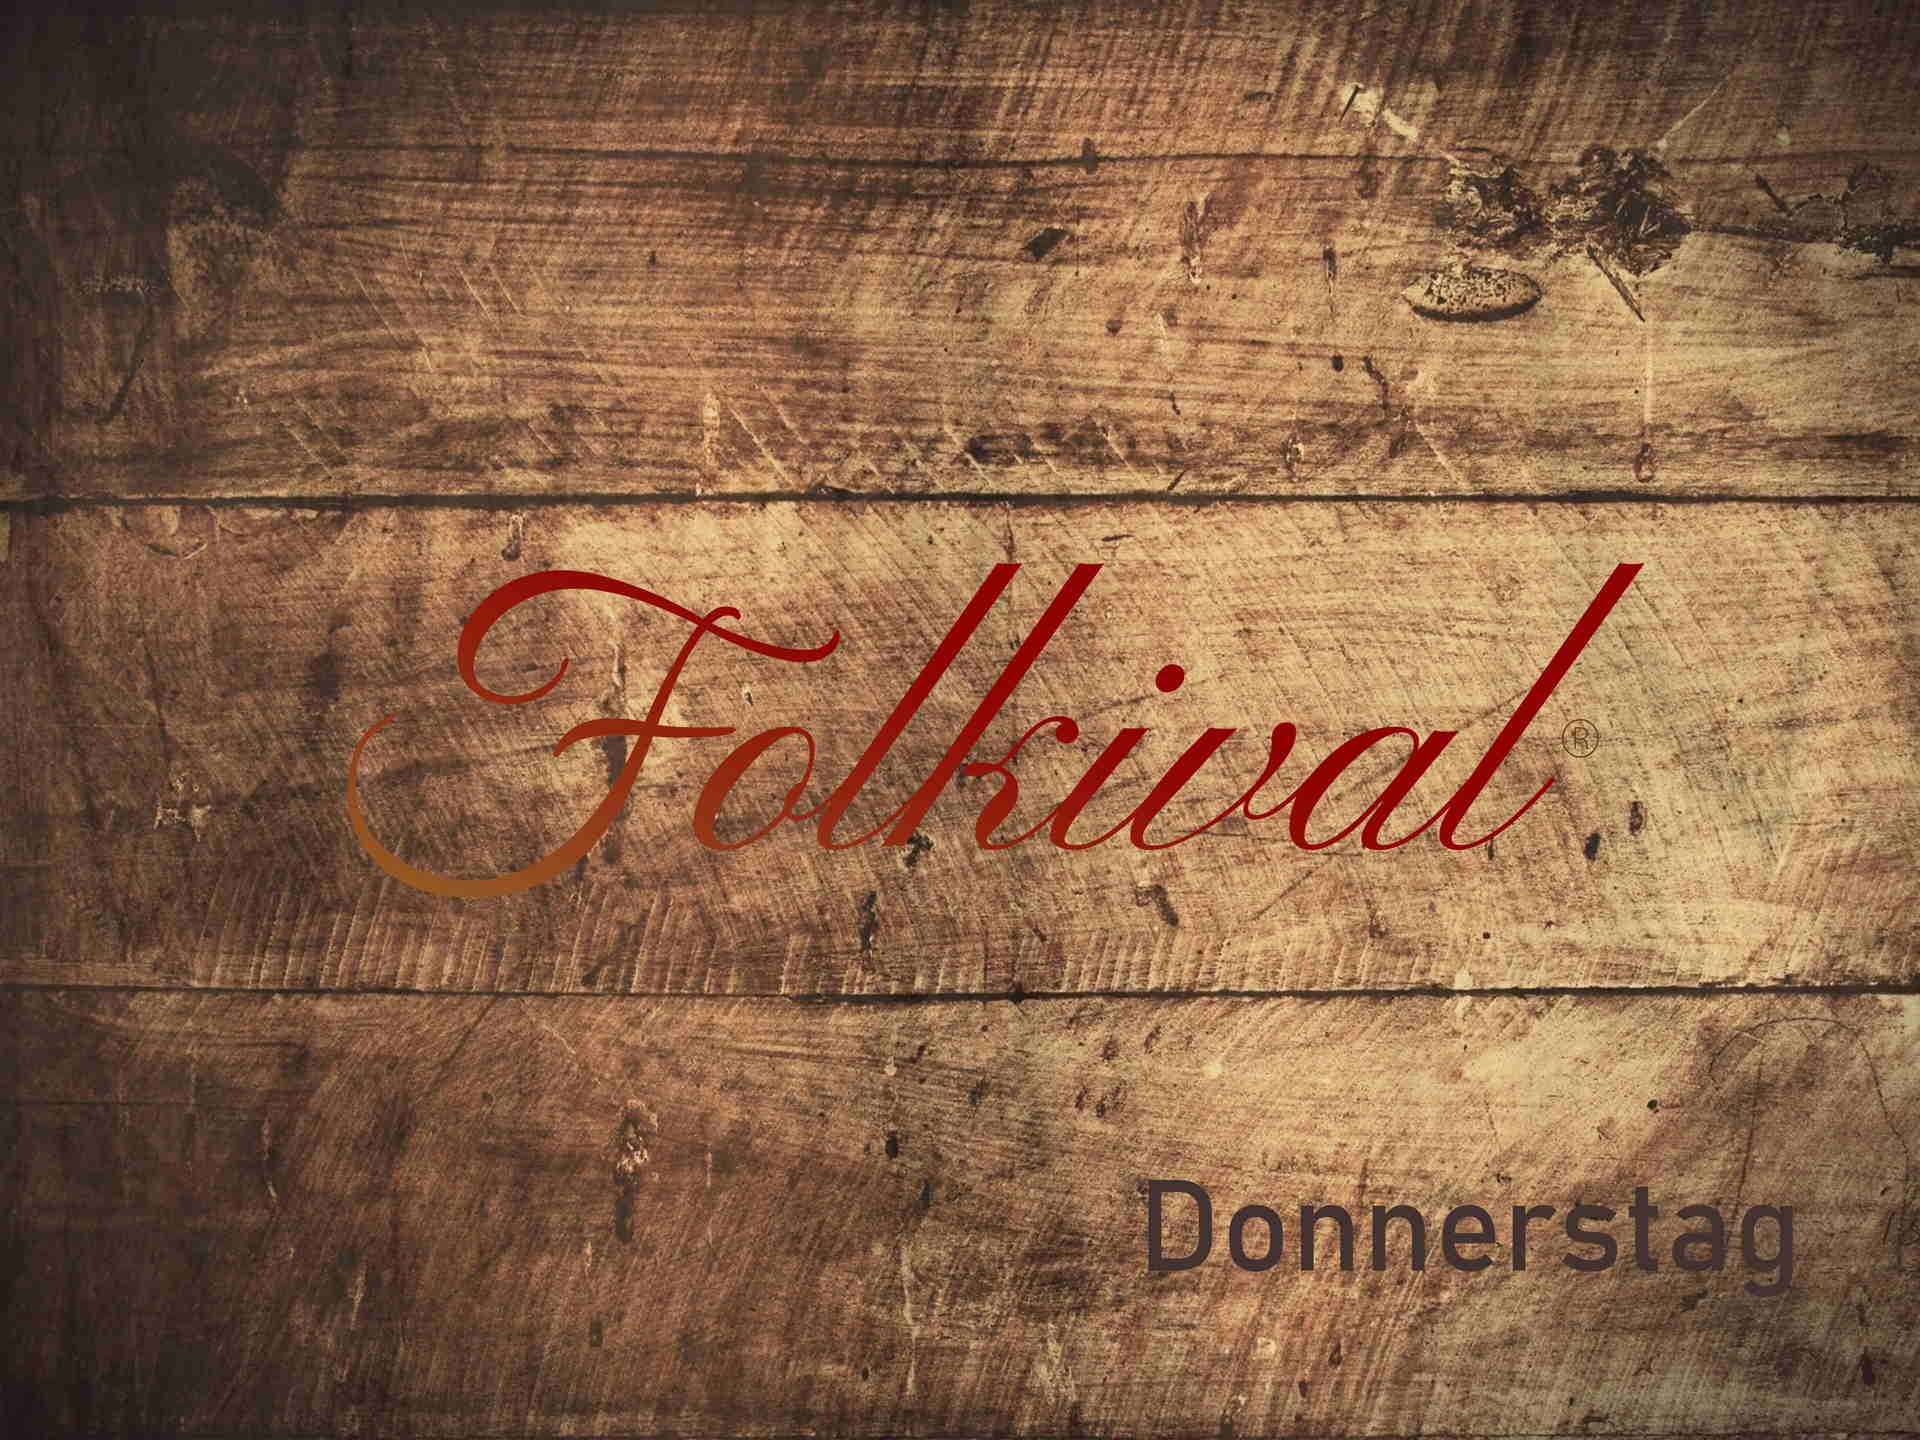 Folkival 2020: Donnerstag - Pub & Session